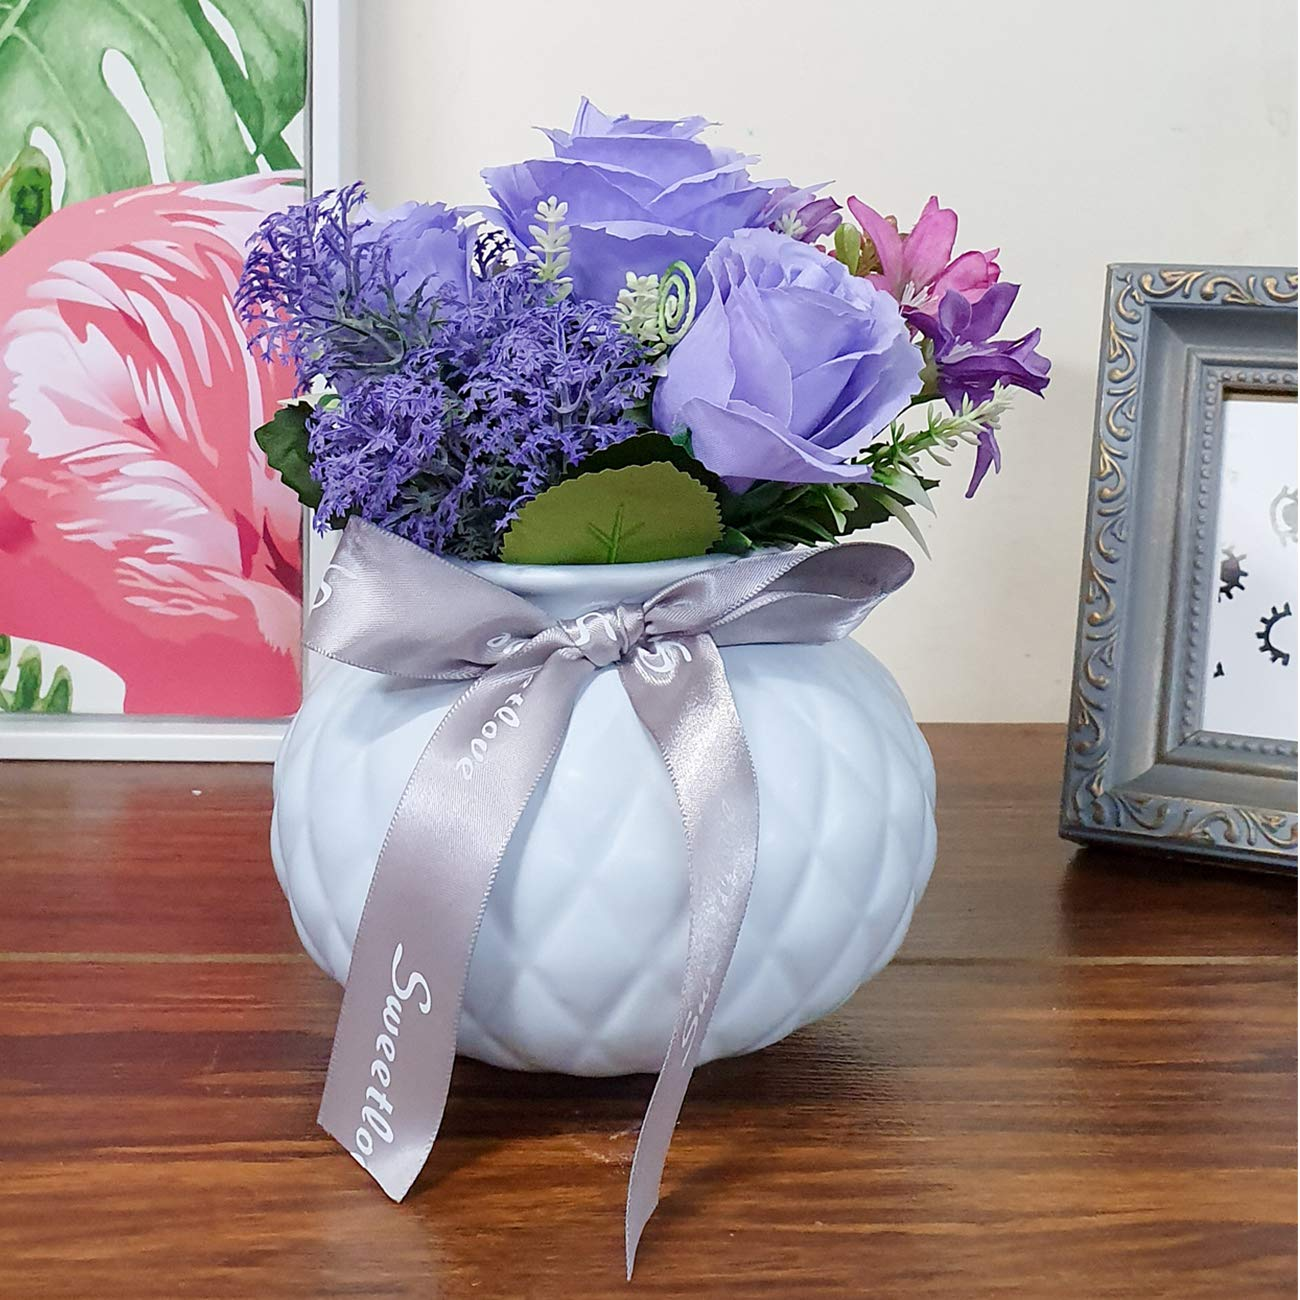 Artificial Flowers/Plants/Multi Tulip Flower In Ceramic Pot/Planter For Home, Garden Decor Decoration Gift Gifting - Purple